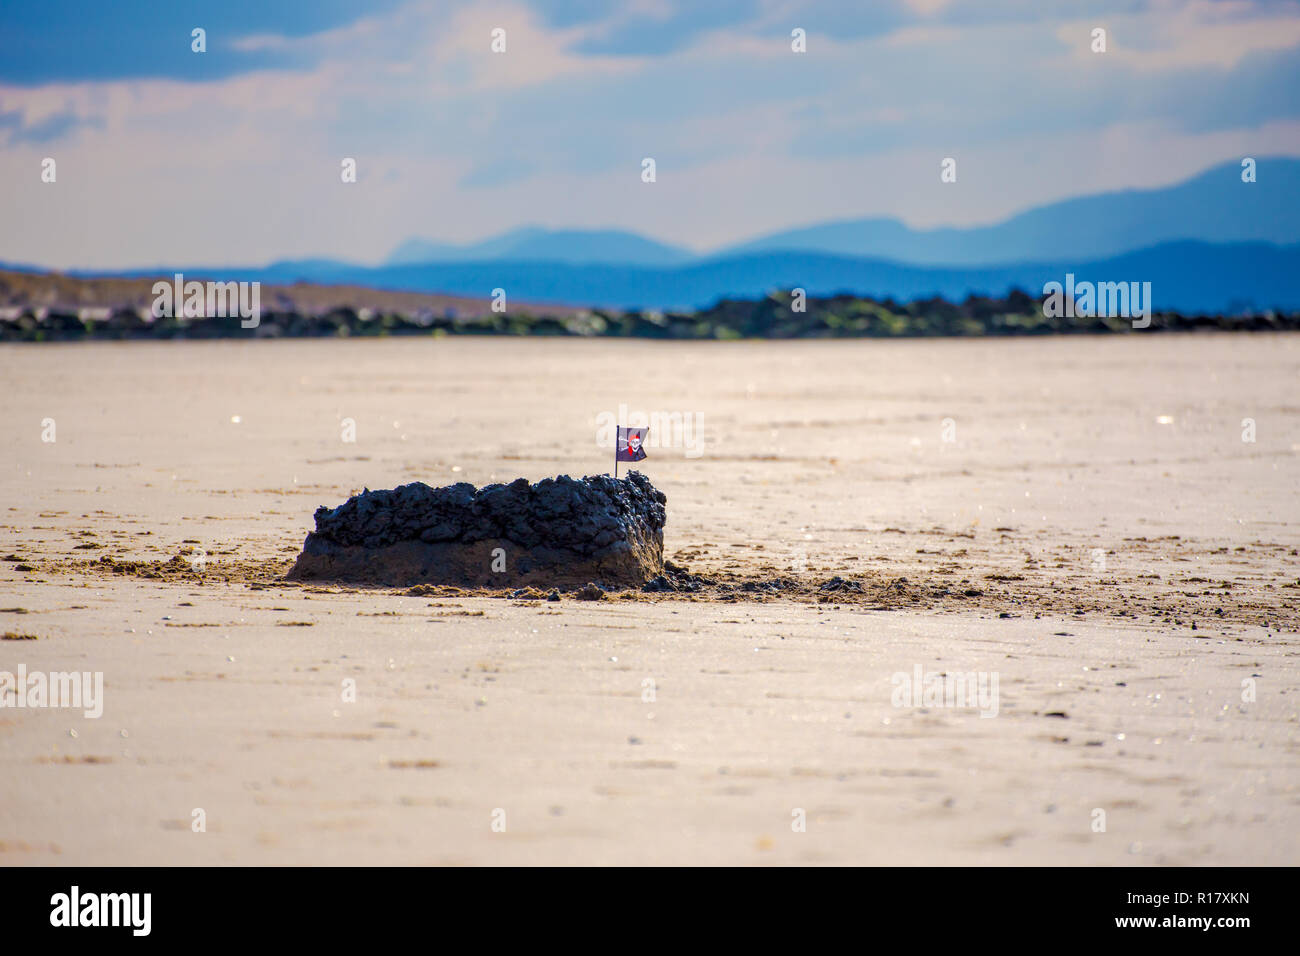 Sand castle/Mud castle topped with a small skull & crossbones flag on the beach. The mountains of Snowdoncan be seen in the background. Prestatyn, Nor Stock Photo